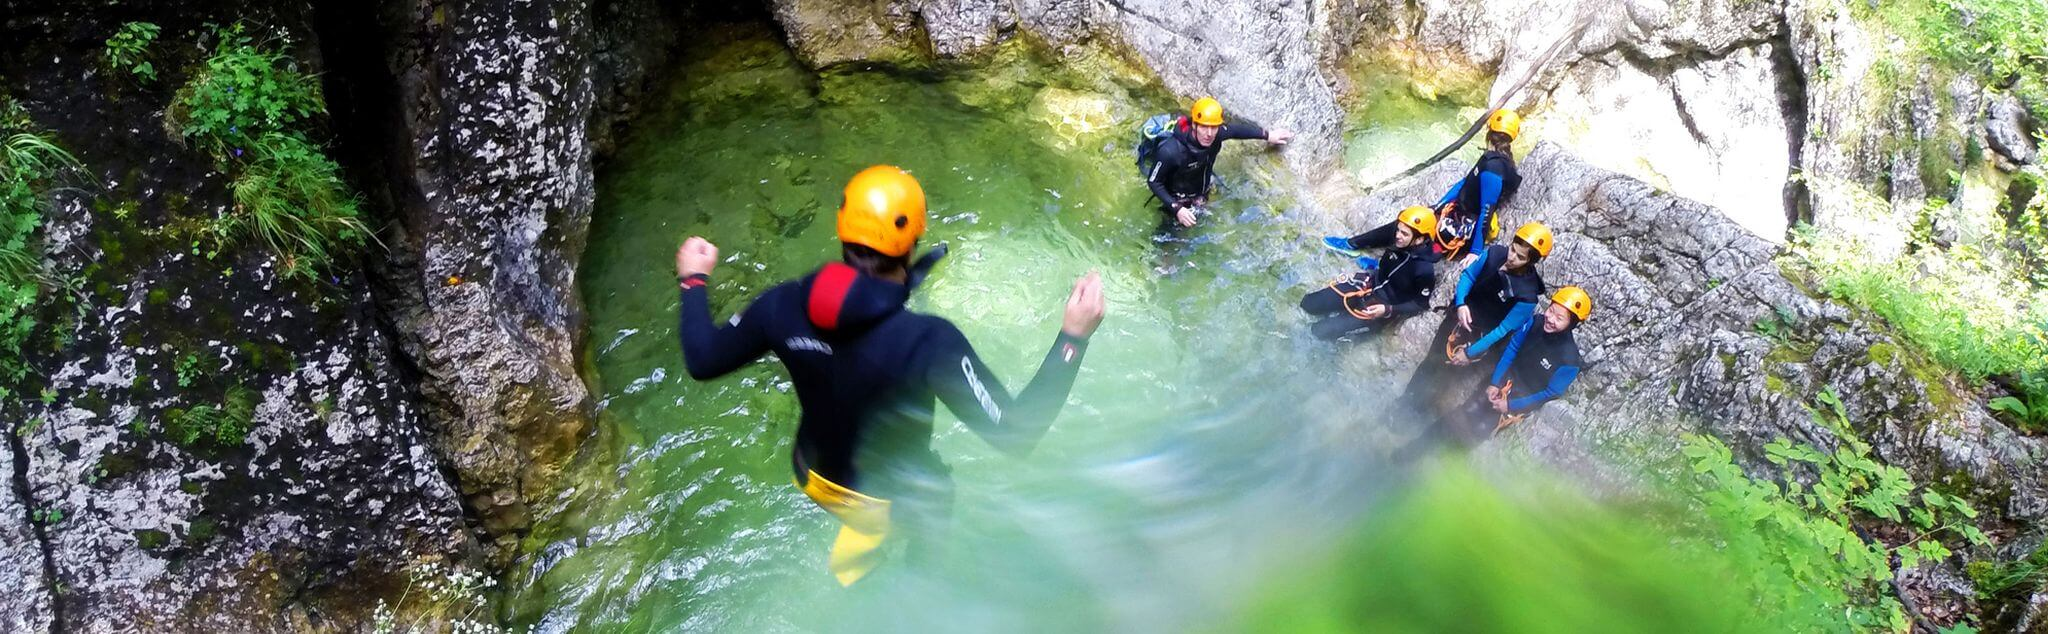 Canyoning in Down